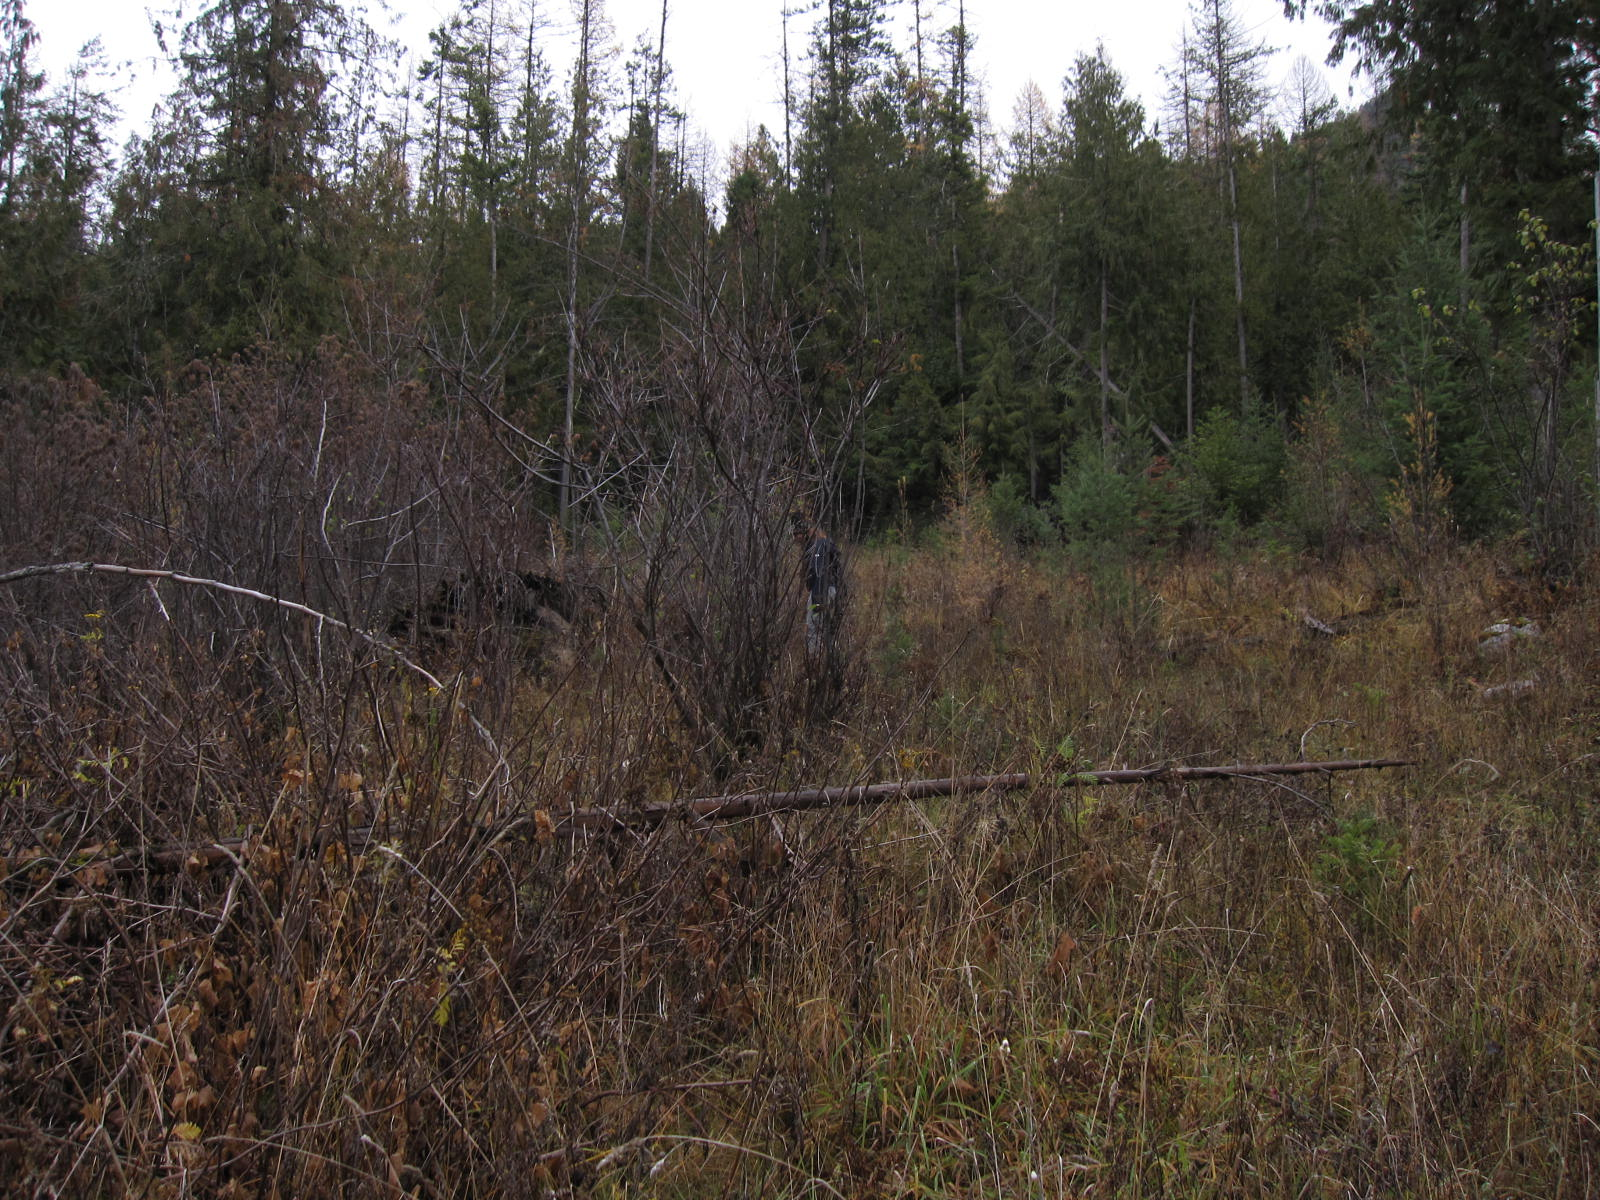 Terreno per Vendita alle ore Three lots with views of Lake Pend Oreille B3 L18-20 Pend Oreille Ave Bayview, Idaho, 83803 Stati Uniti